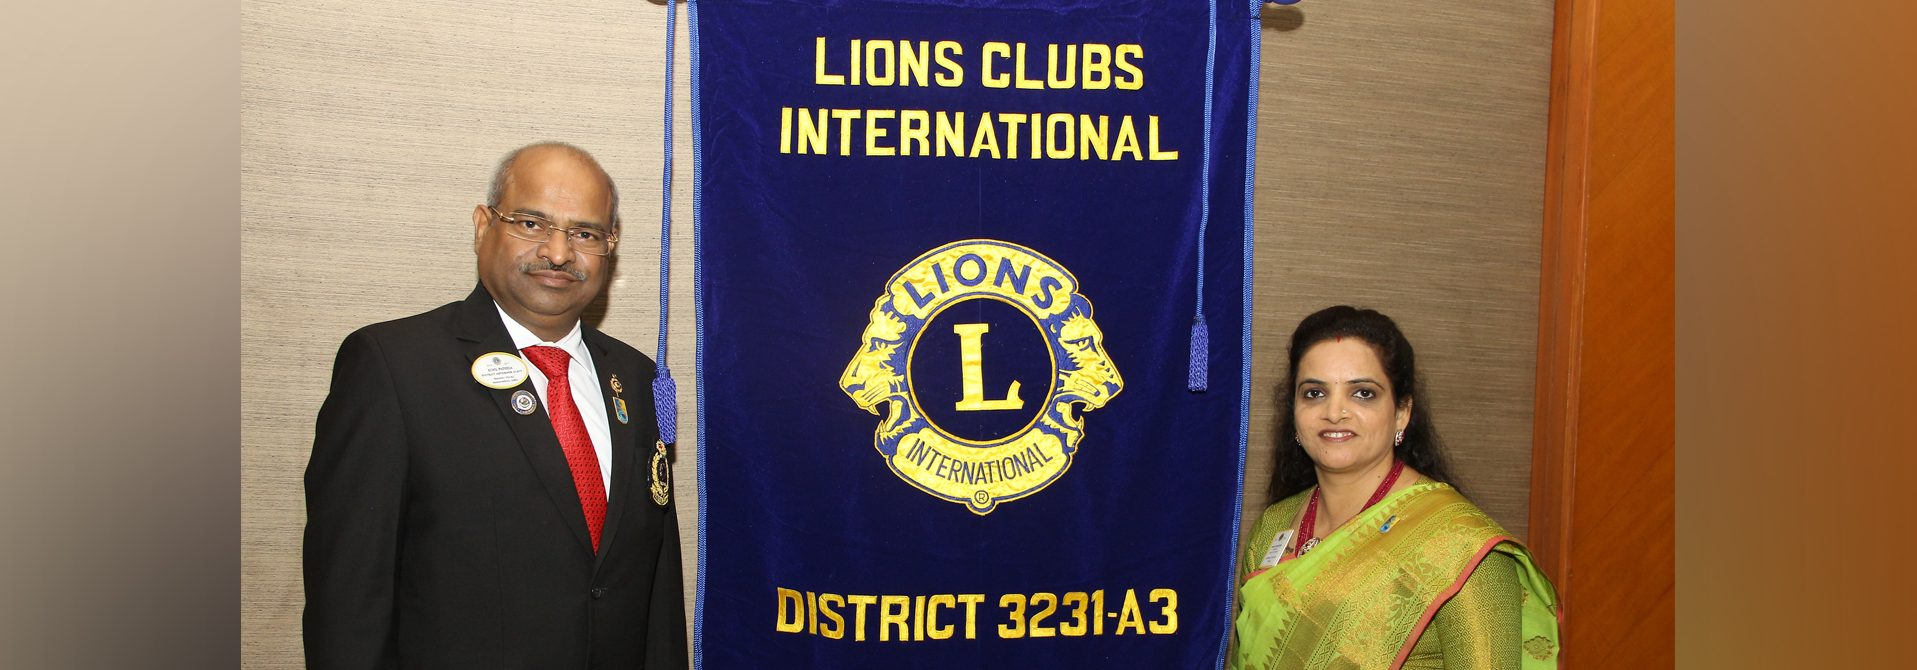 Presidential Elections 2016 - Lions Club